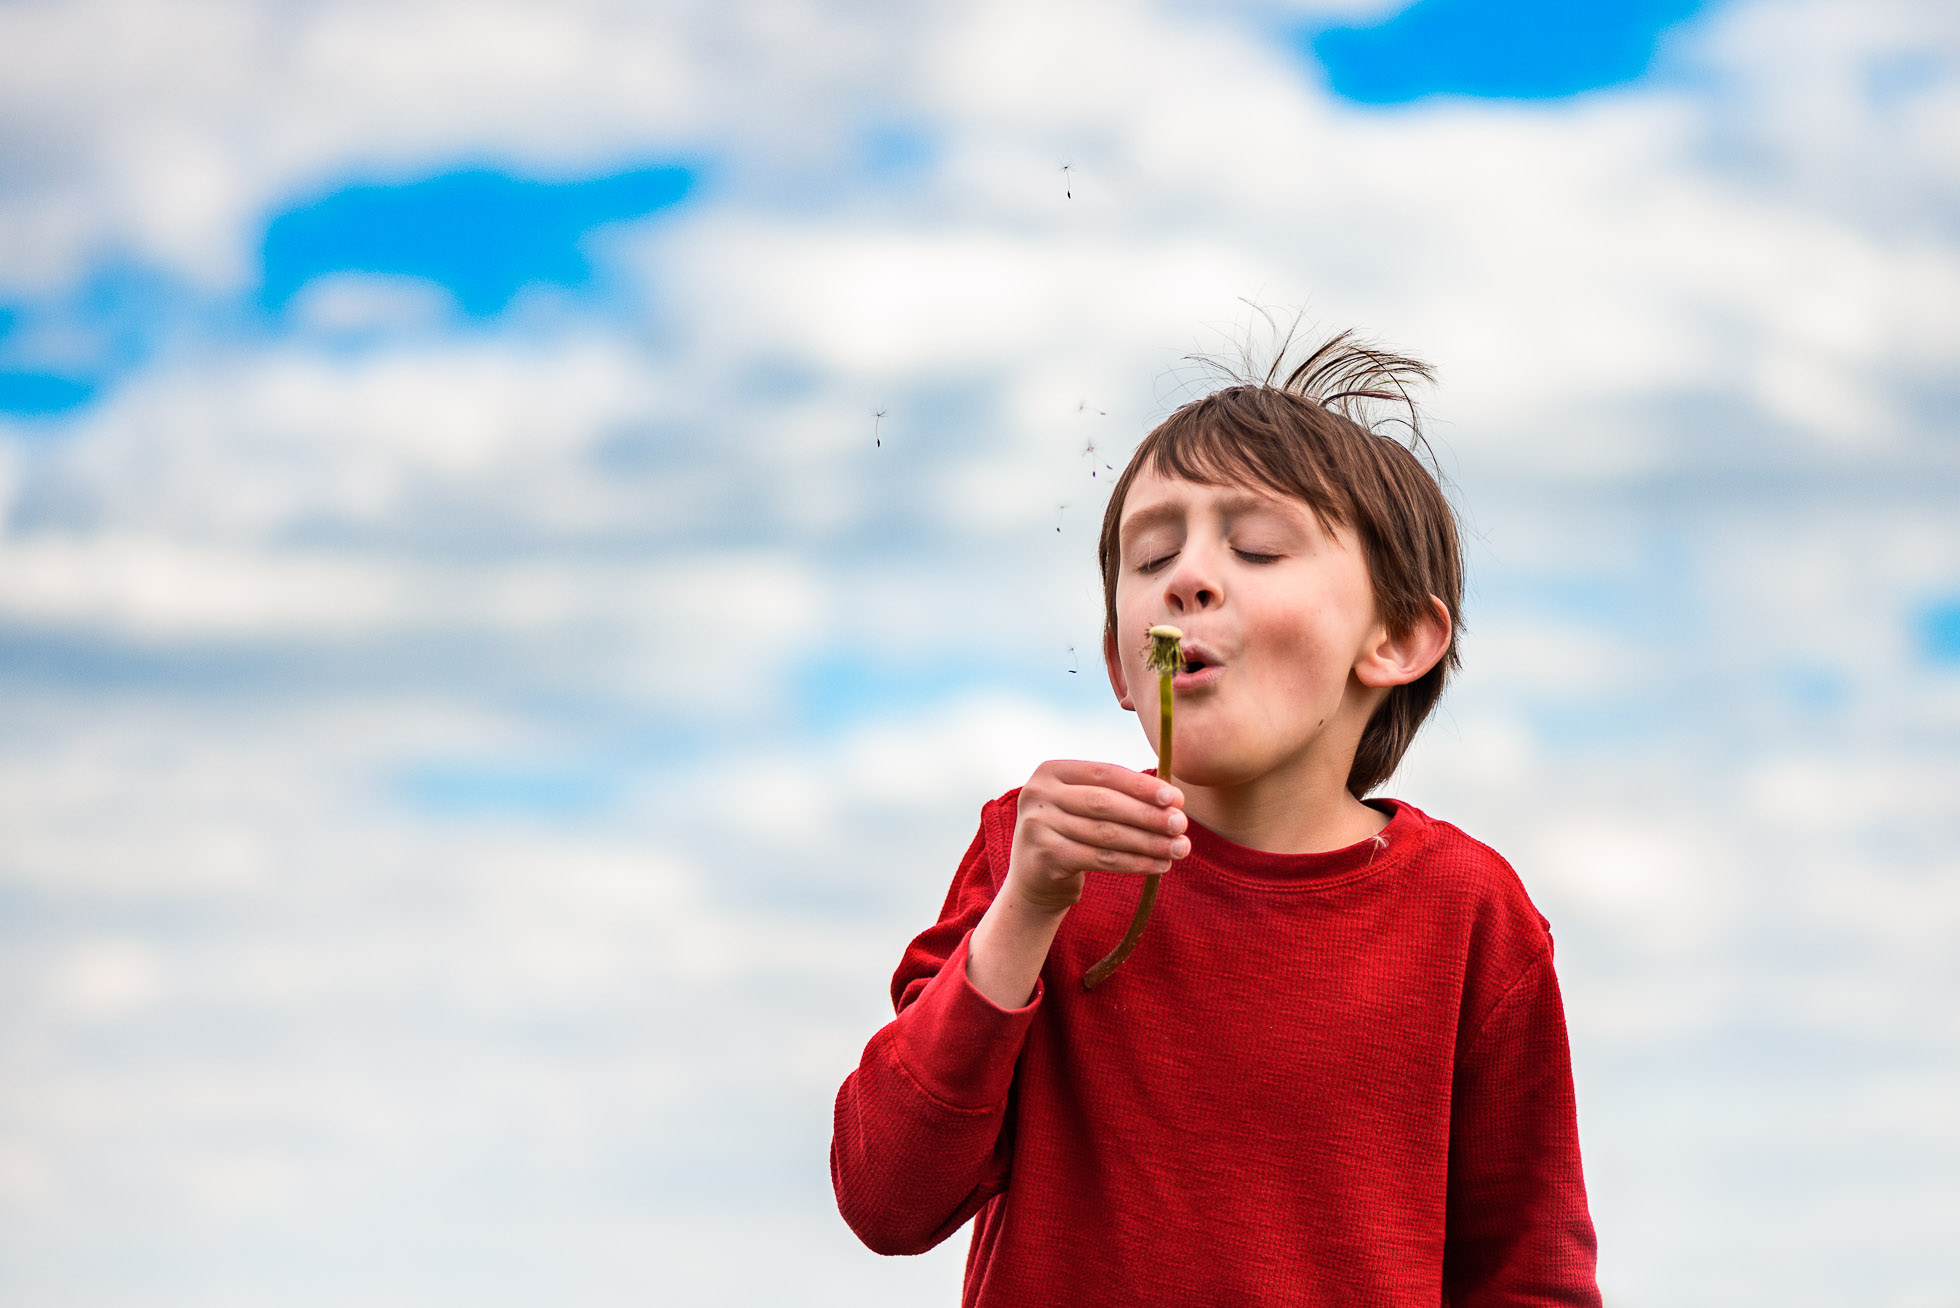 a boy blowing a dandelion with a big blue skky